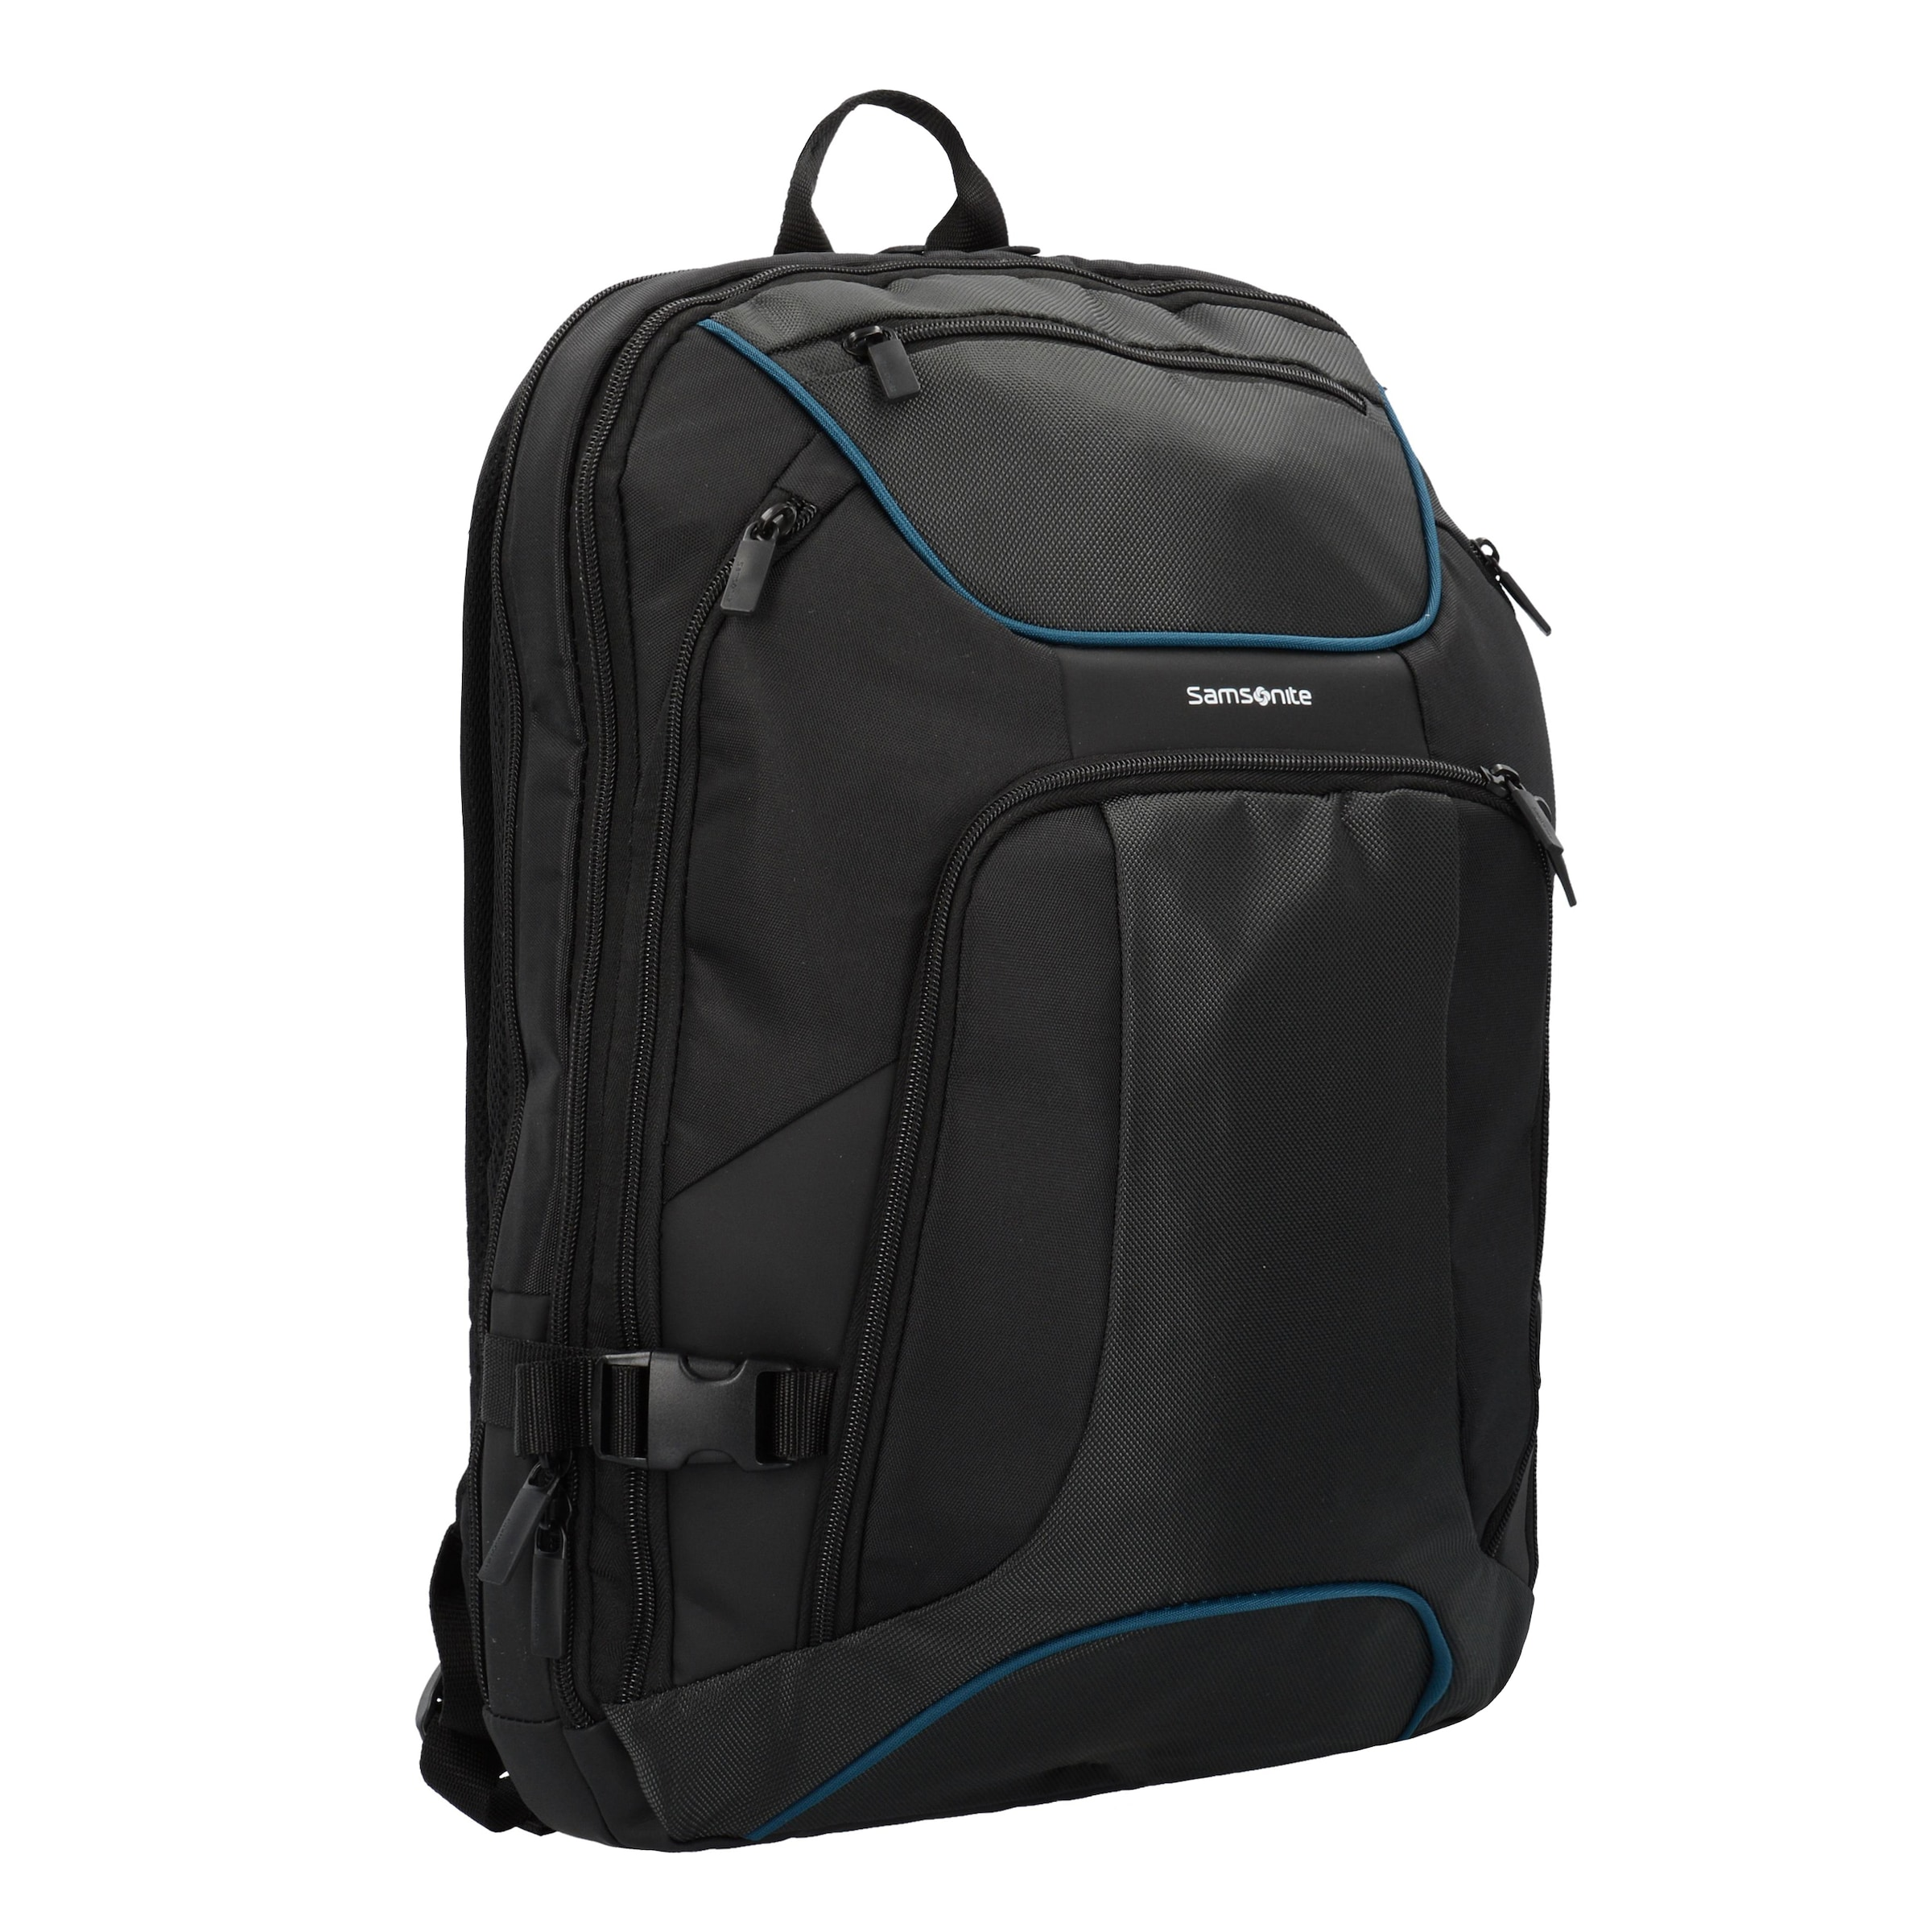 Samsonite Schwarz Business 'kleur' In Rucksack lKF1Jc